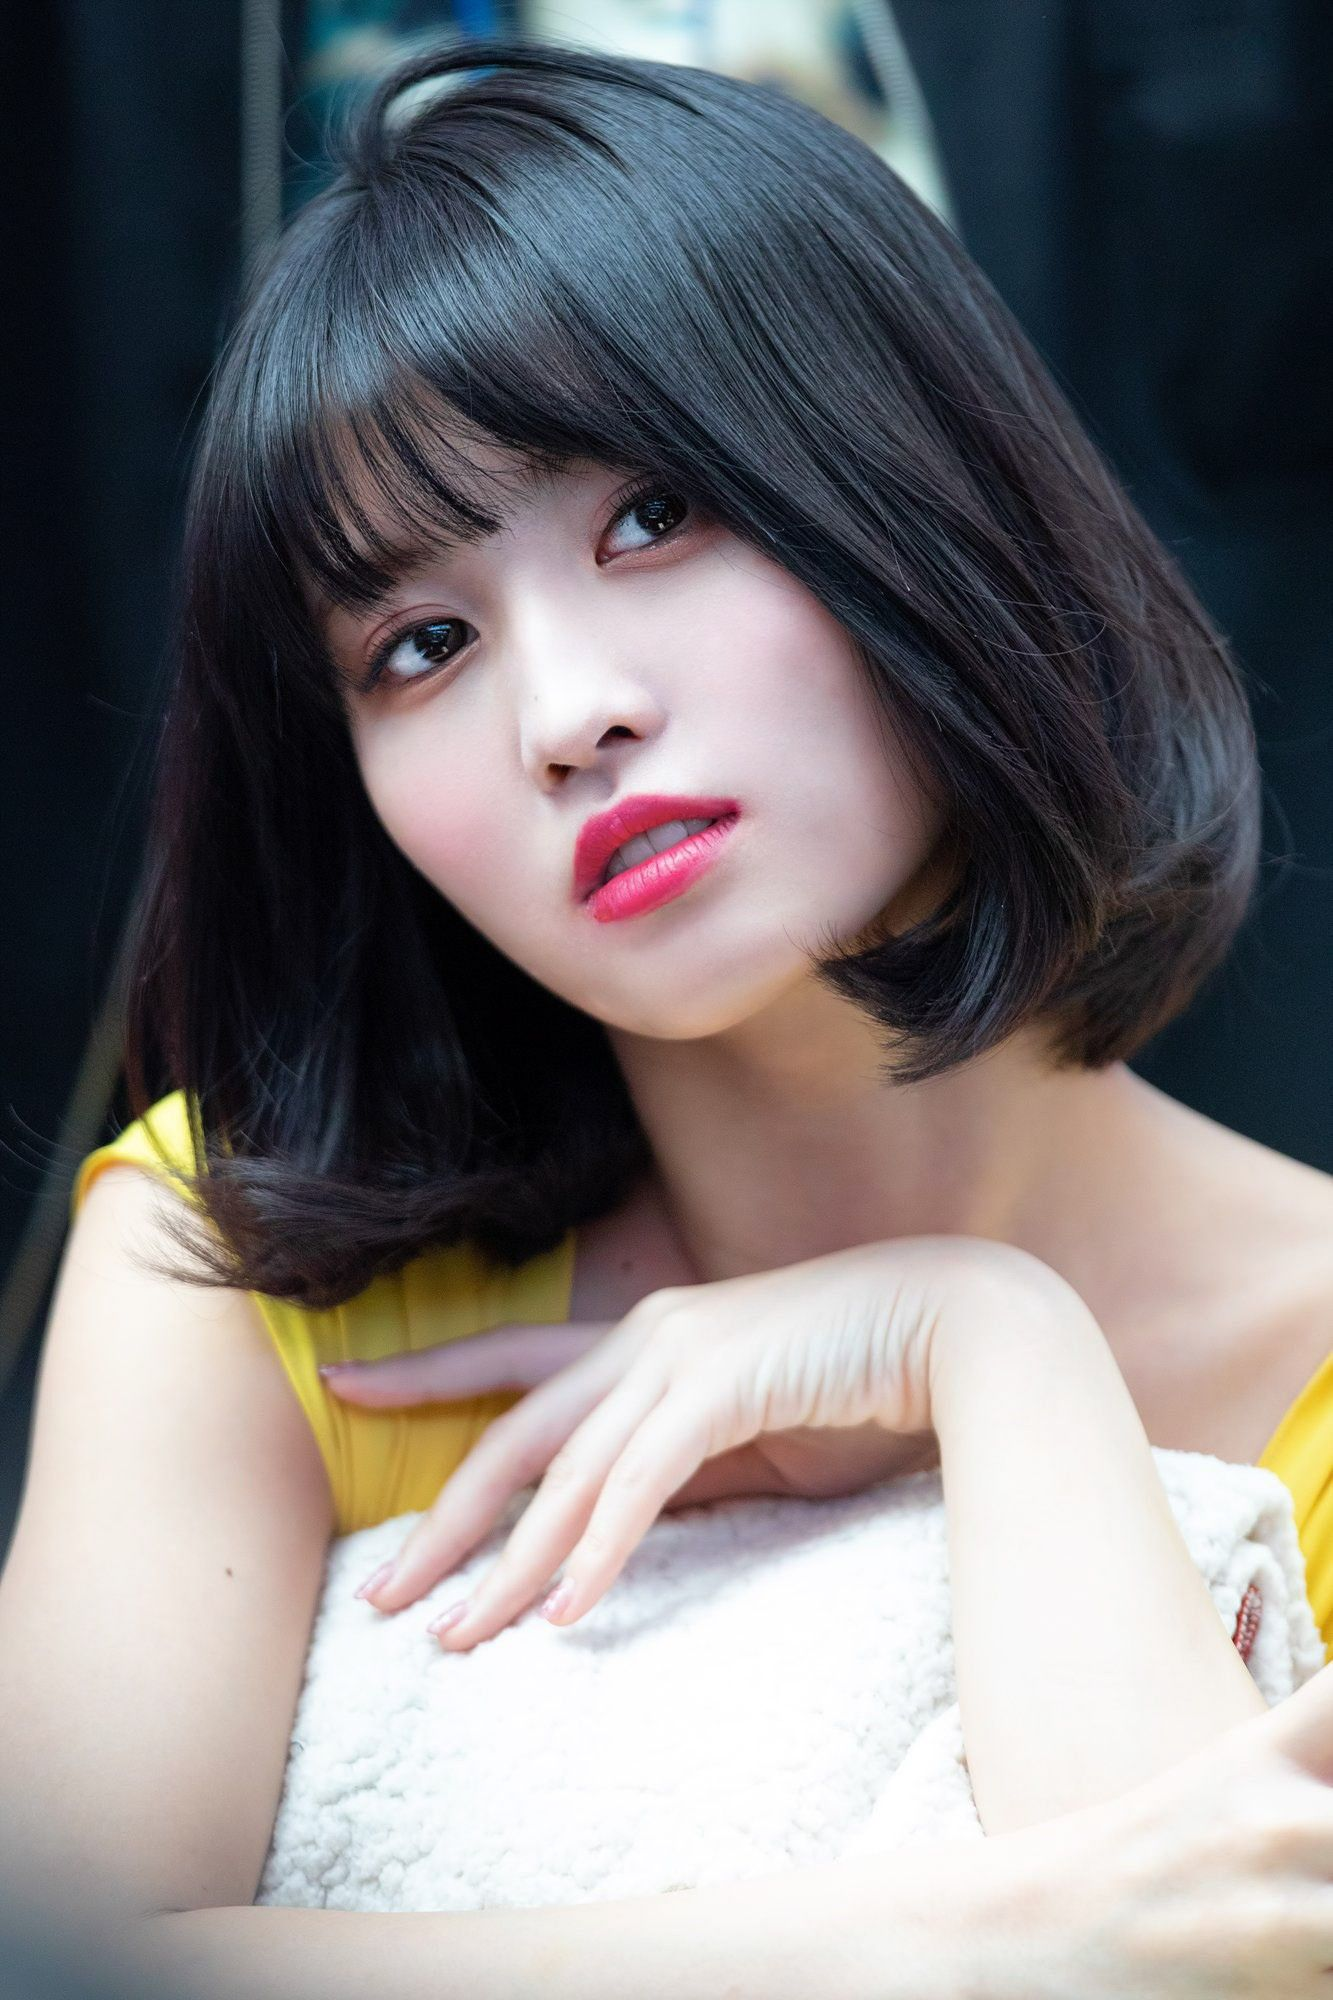 Pin by 起亚 on loves in pinterest hirai momo kpop and